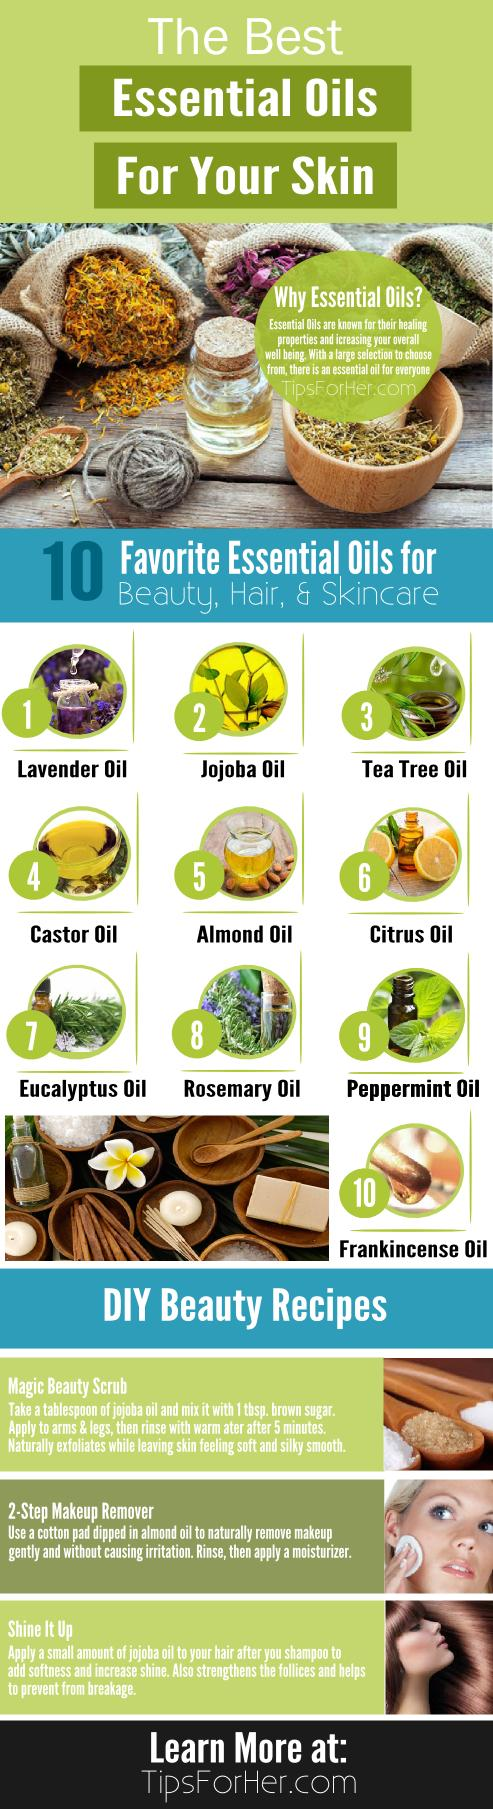 The Best Essential Oils For Your Skin!